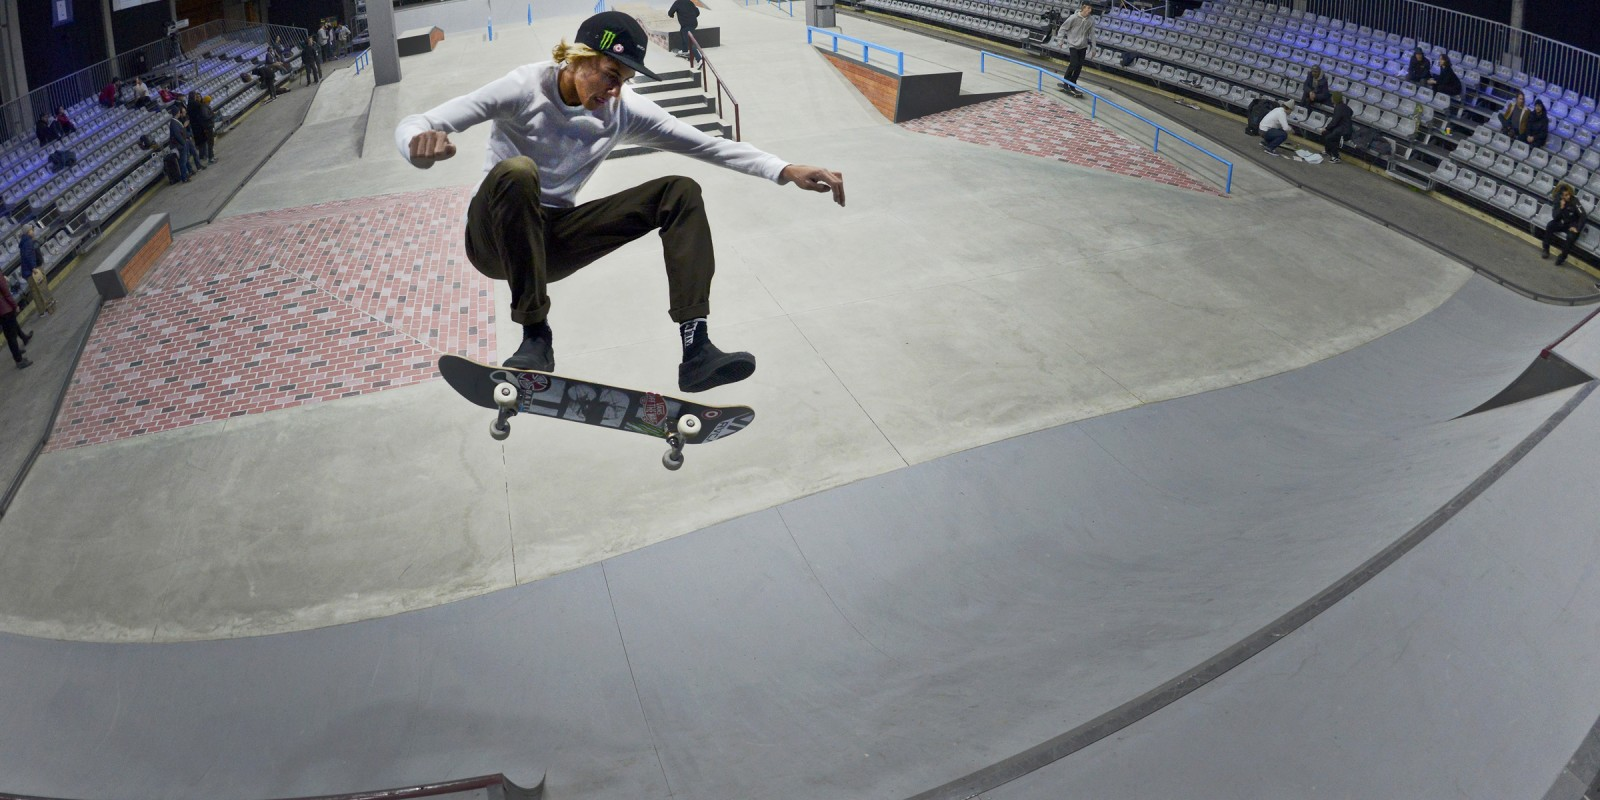 Curren Caples competes in the 2016 Winter X Games in Oslo.